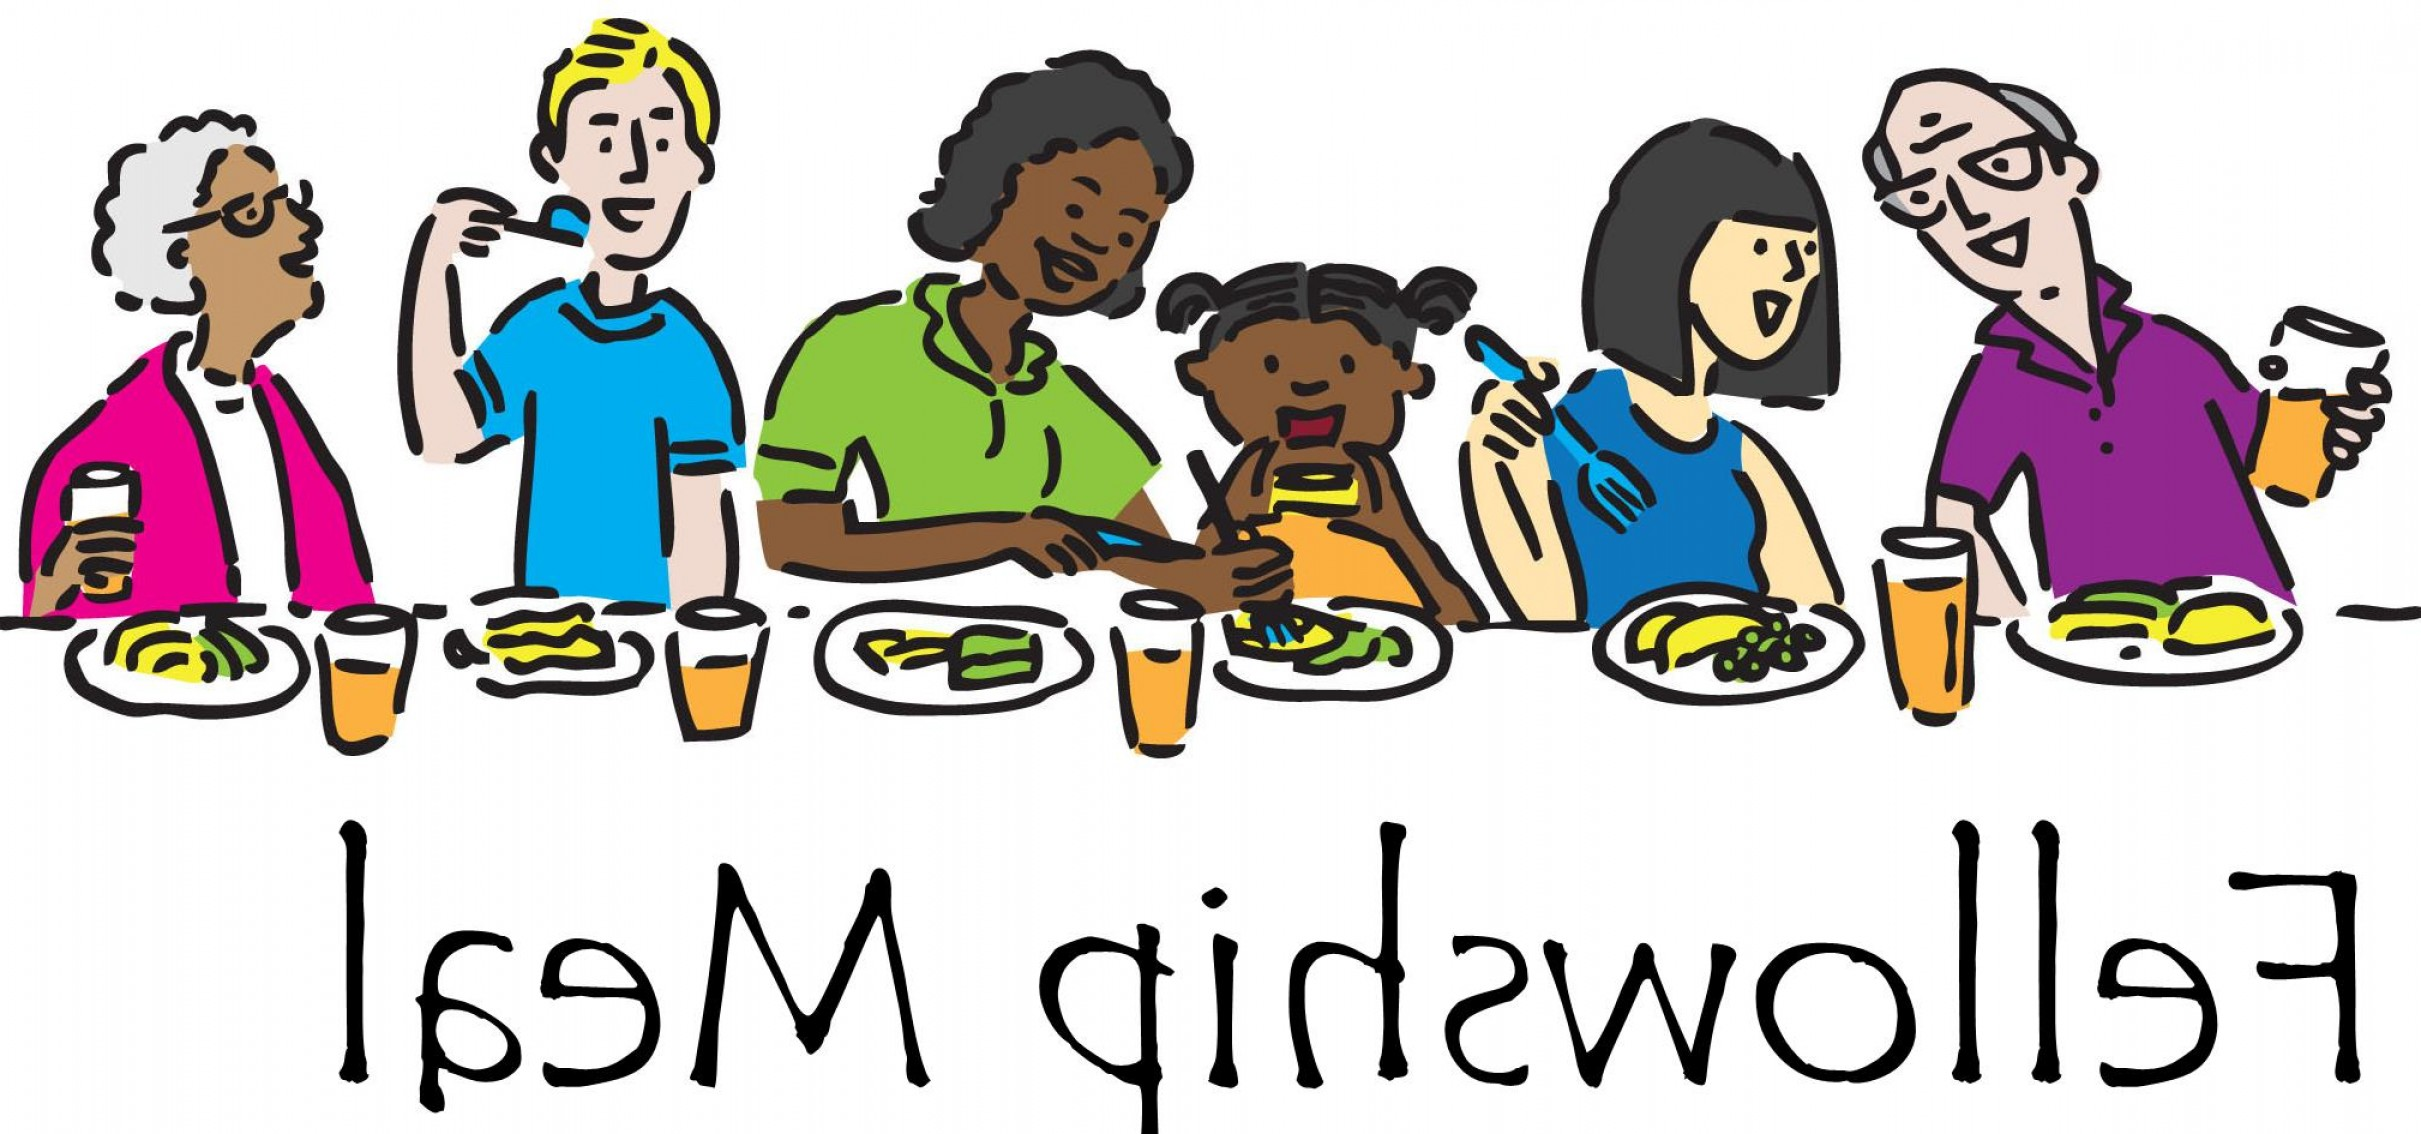 Committee Clipart -Vector: Fellowship Meals Planned Clipart Obmleo Clipart